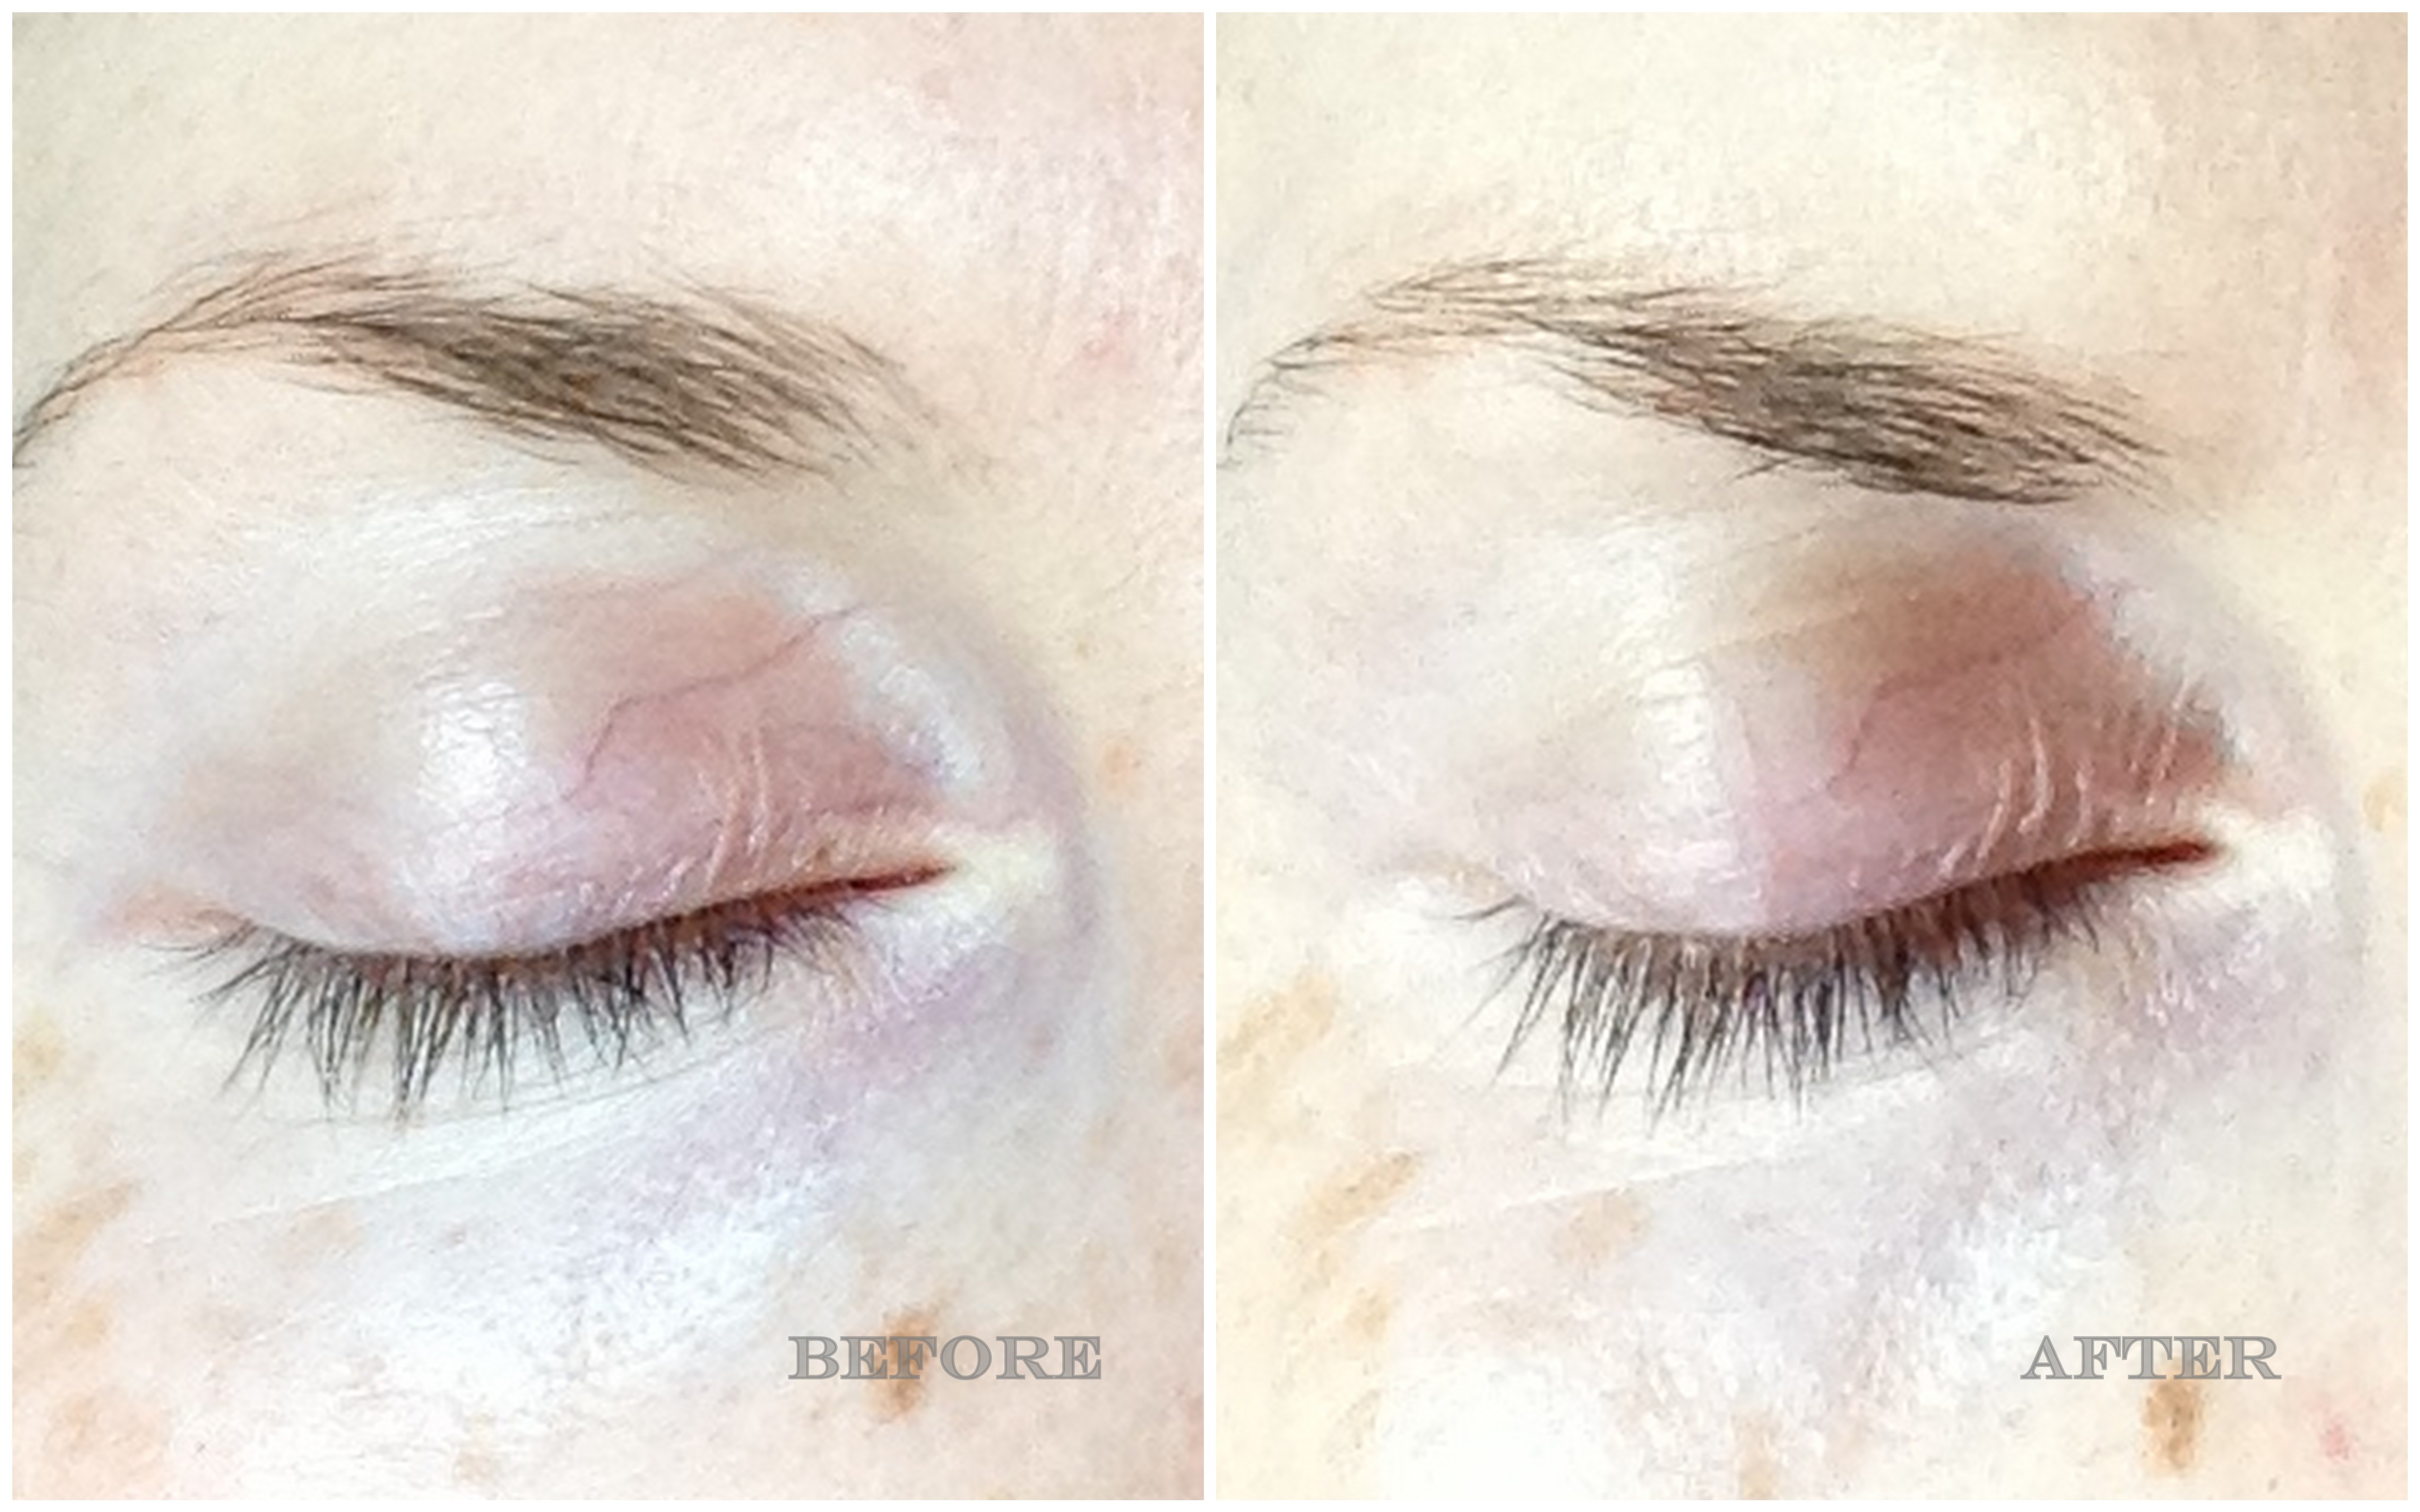 fd3b117a1d1 GOSH Growth Serum and Mascara tried and tested: before and after ...